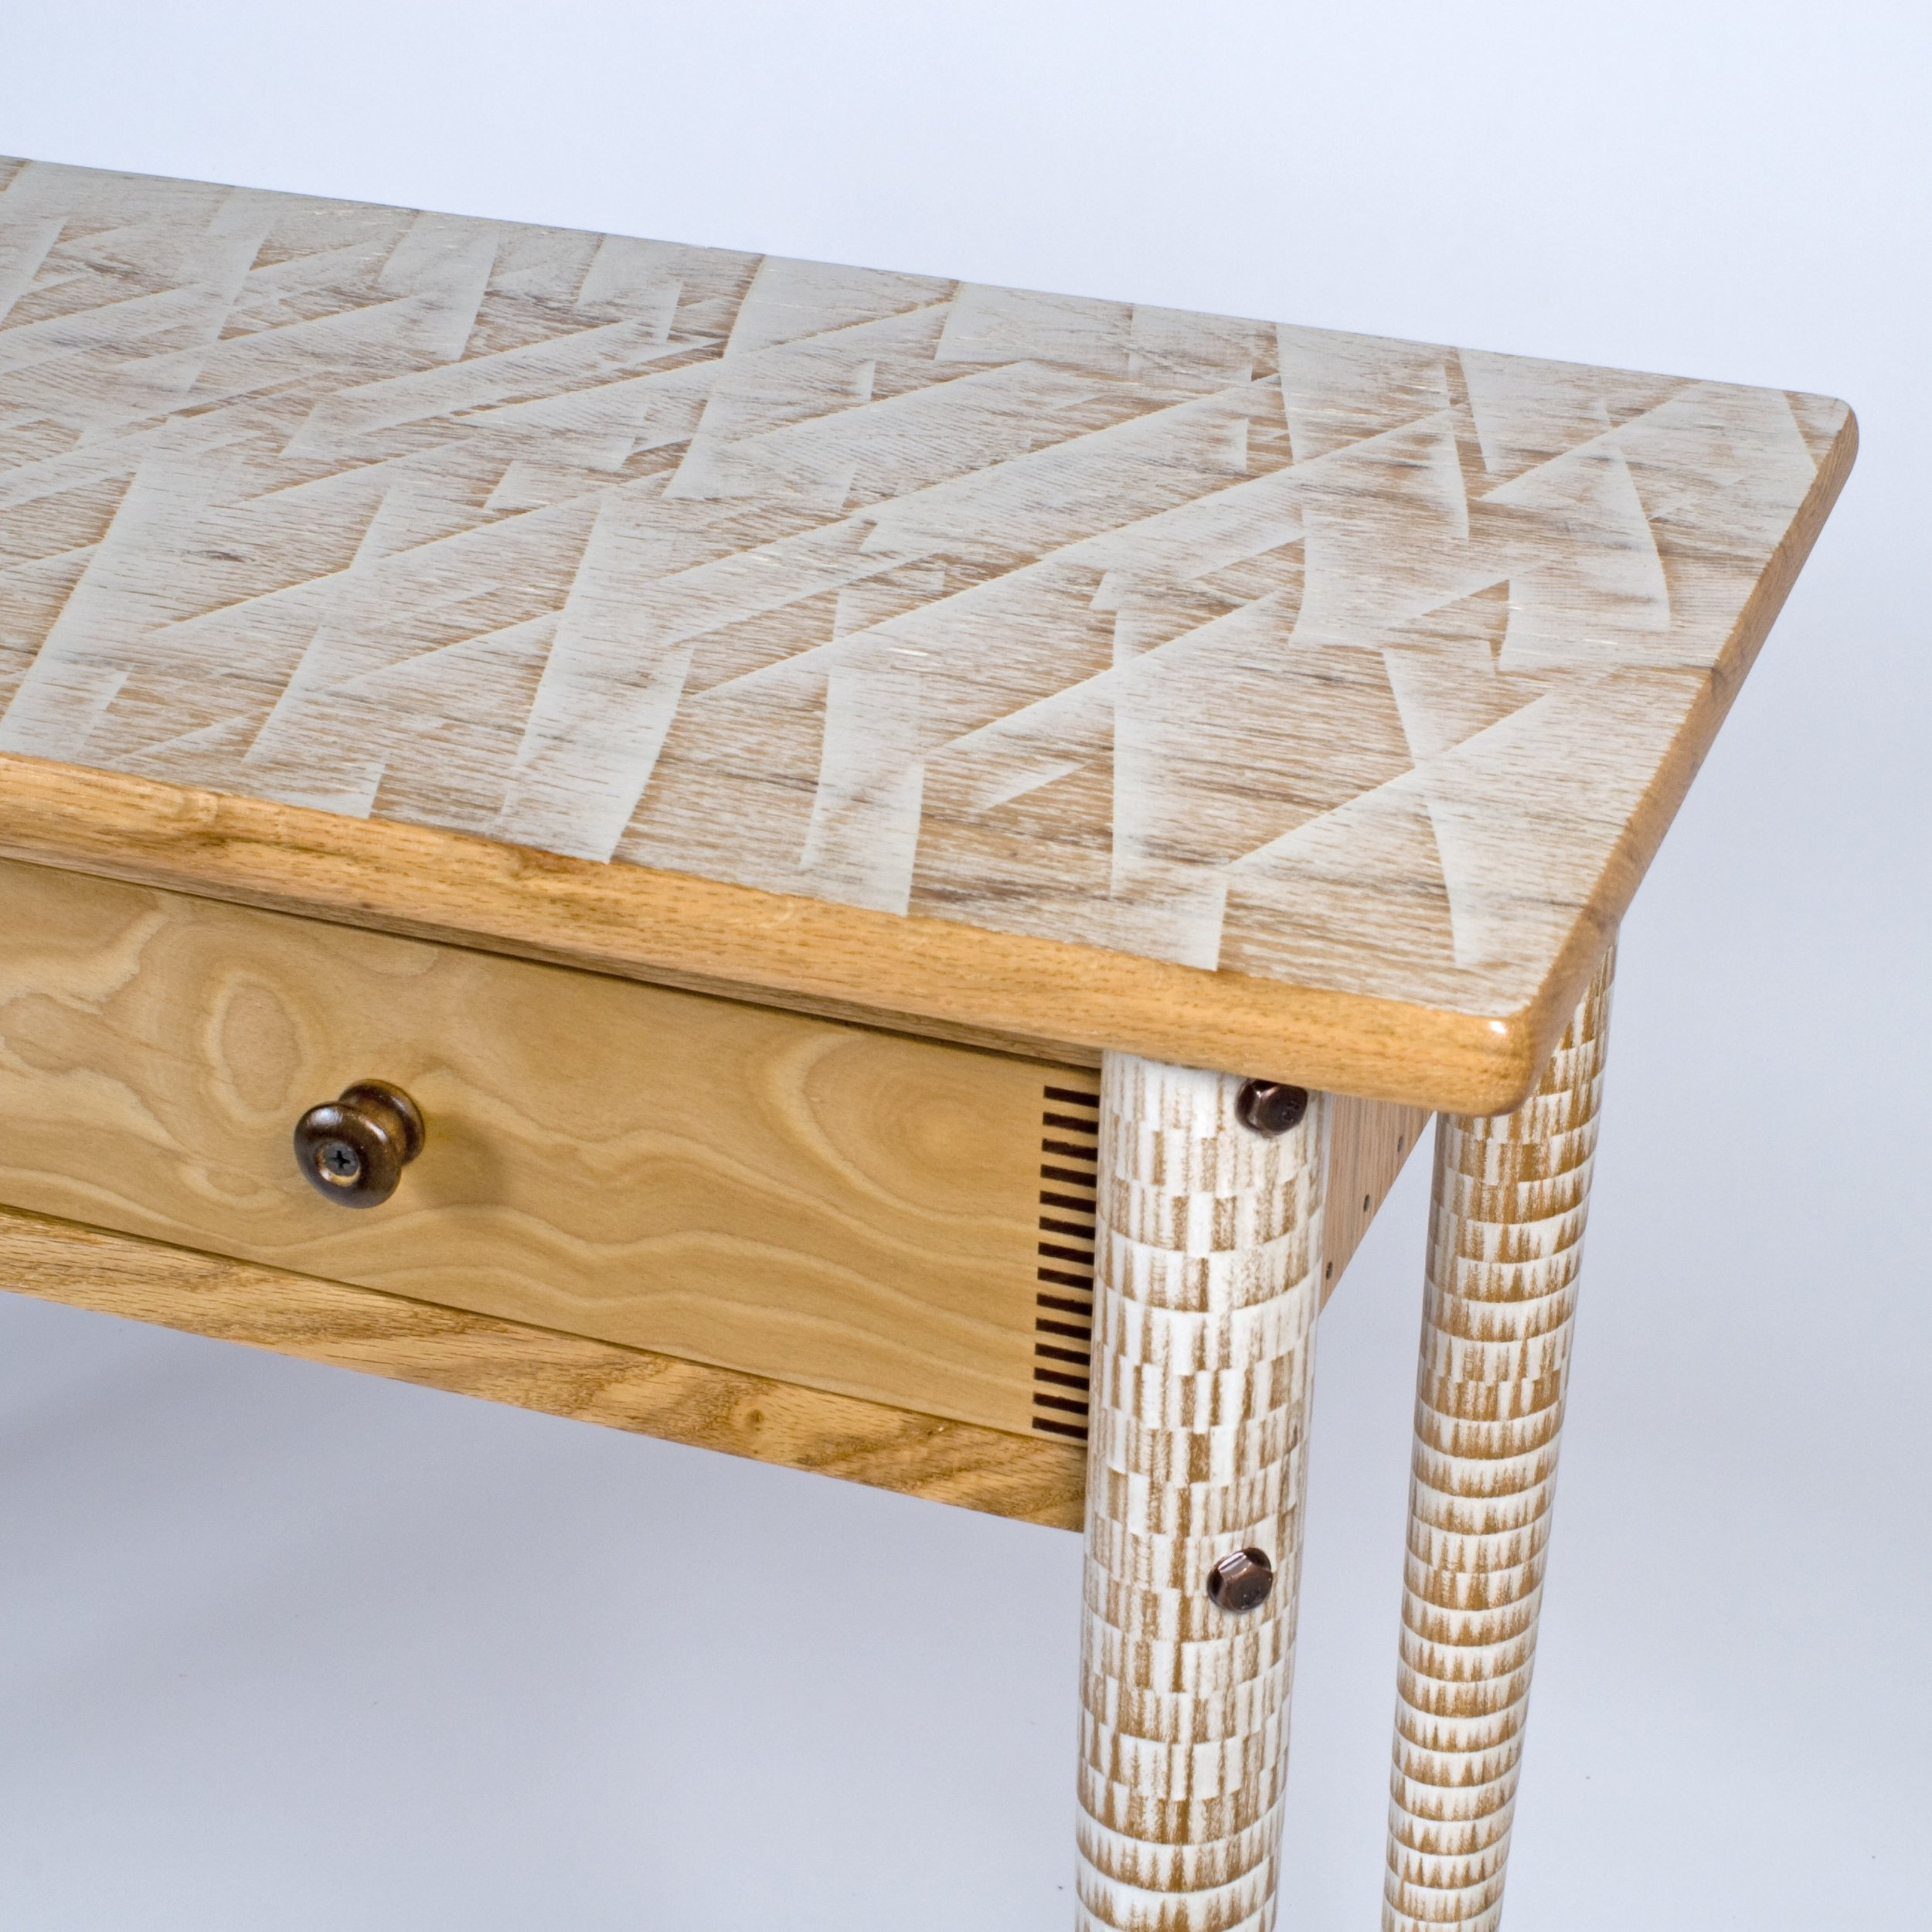 3-drawer-sidetable-2014-01.jpg